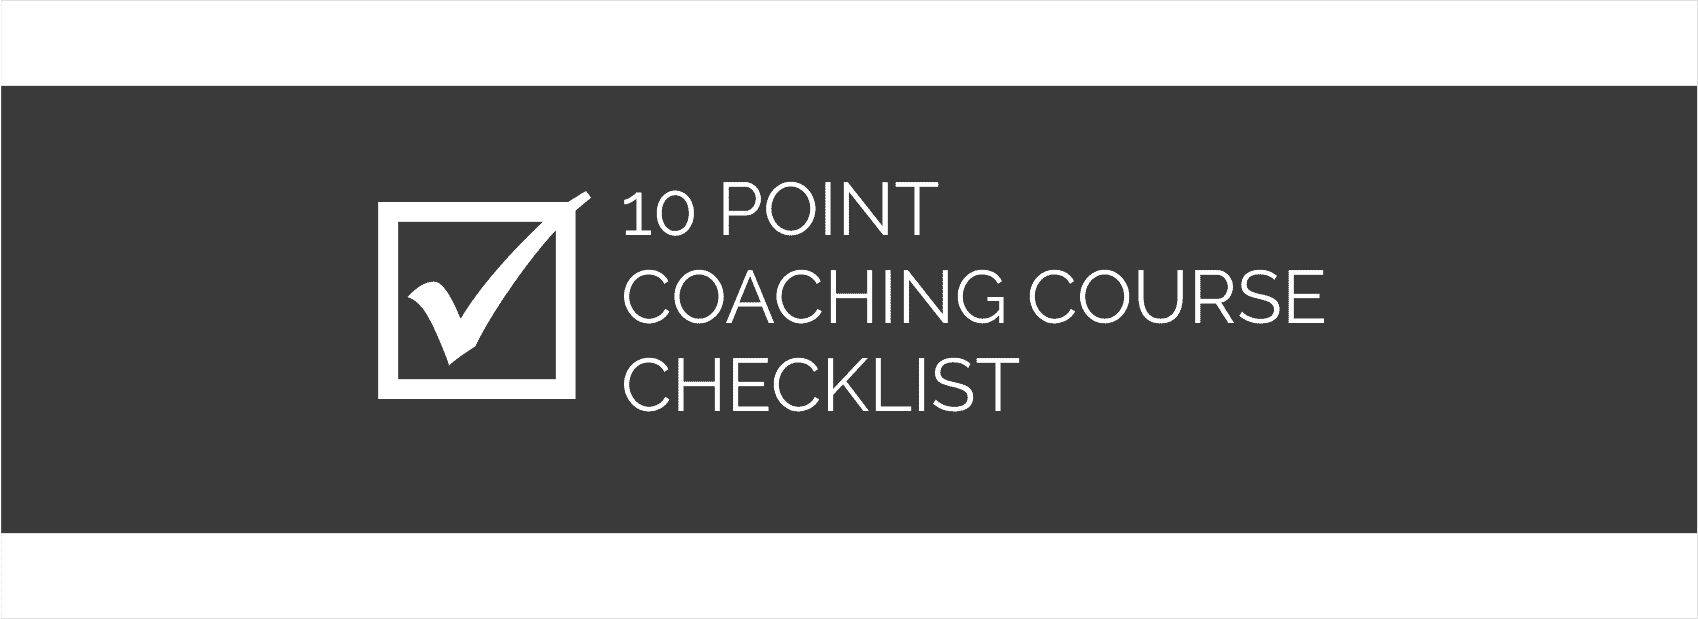 10 Point Coach Course Checklist